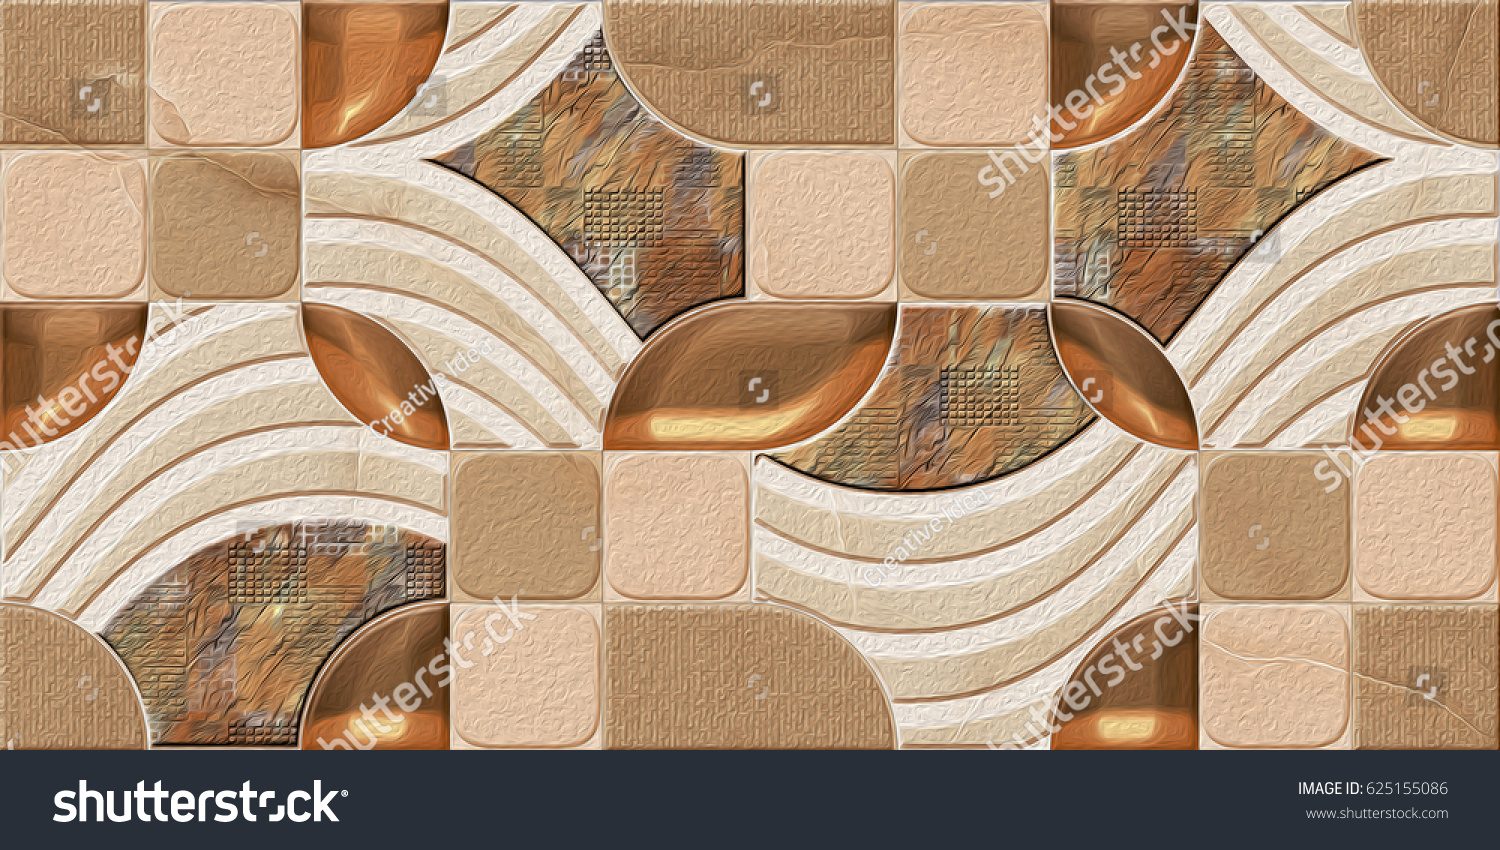 Wall floor tiles design pattern background stock illustration wall floor tiles design pattern background for buildings dailygadgetfo Image collections